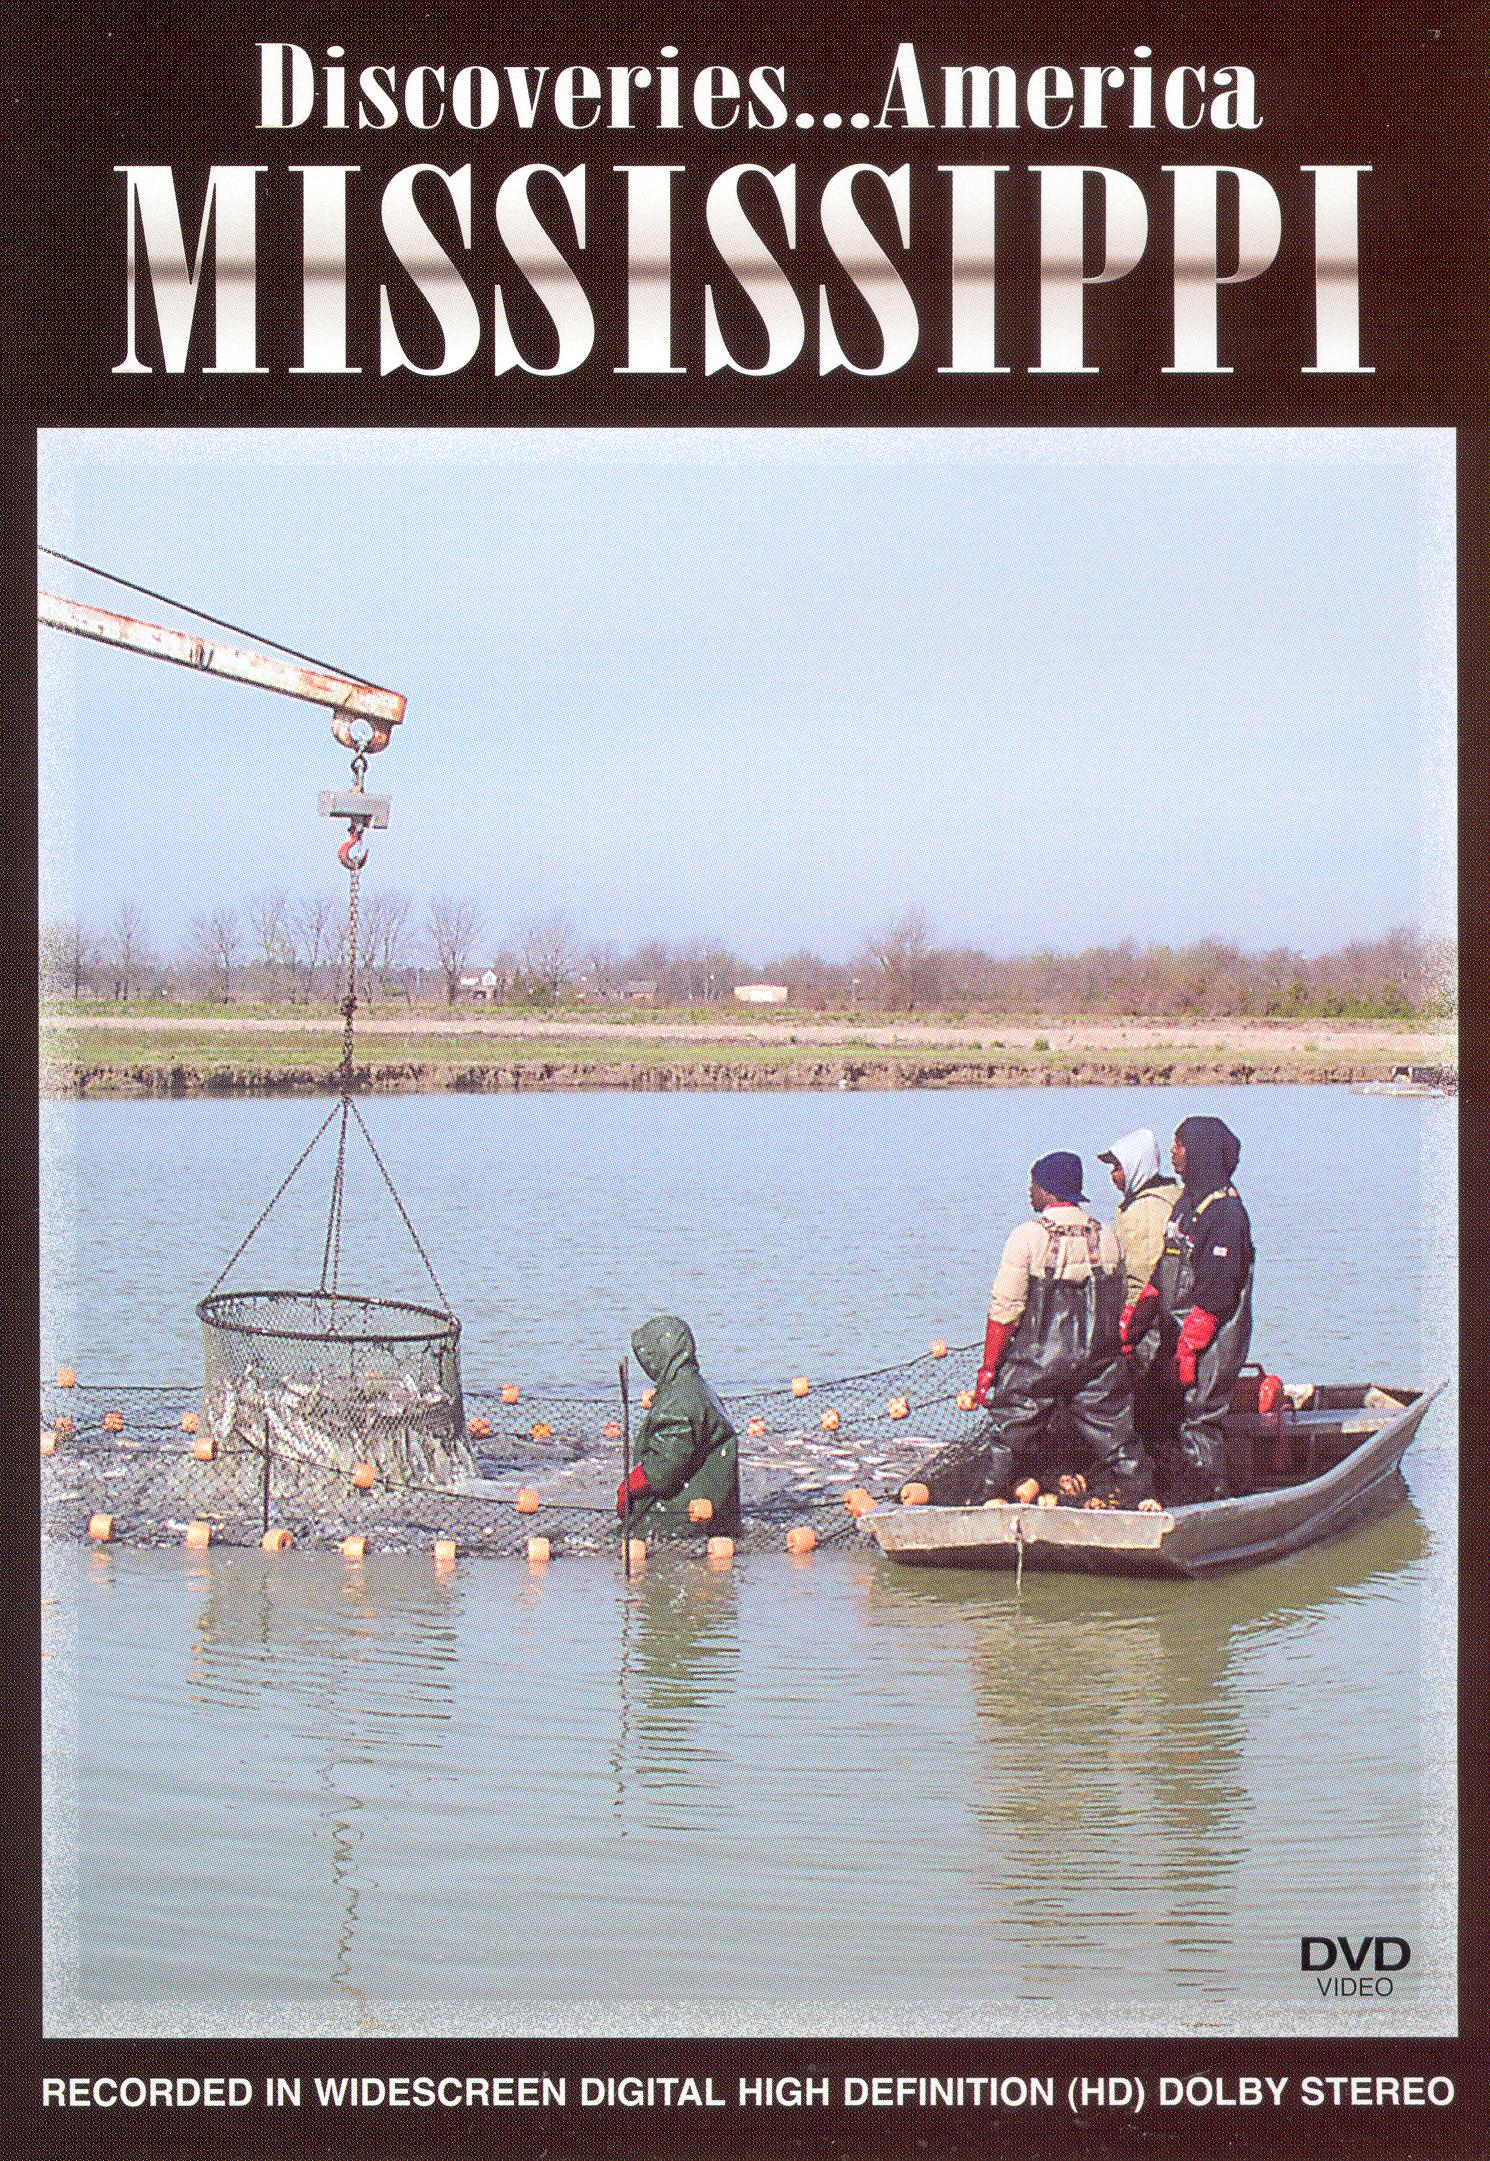 Discoveries... America: Mississippi